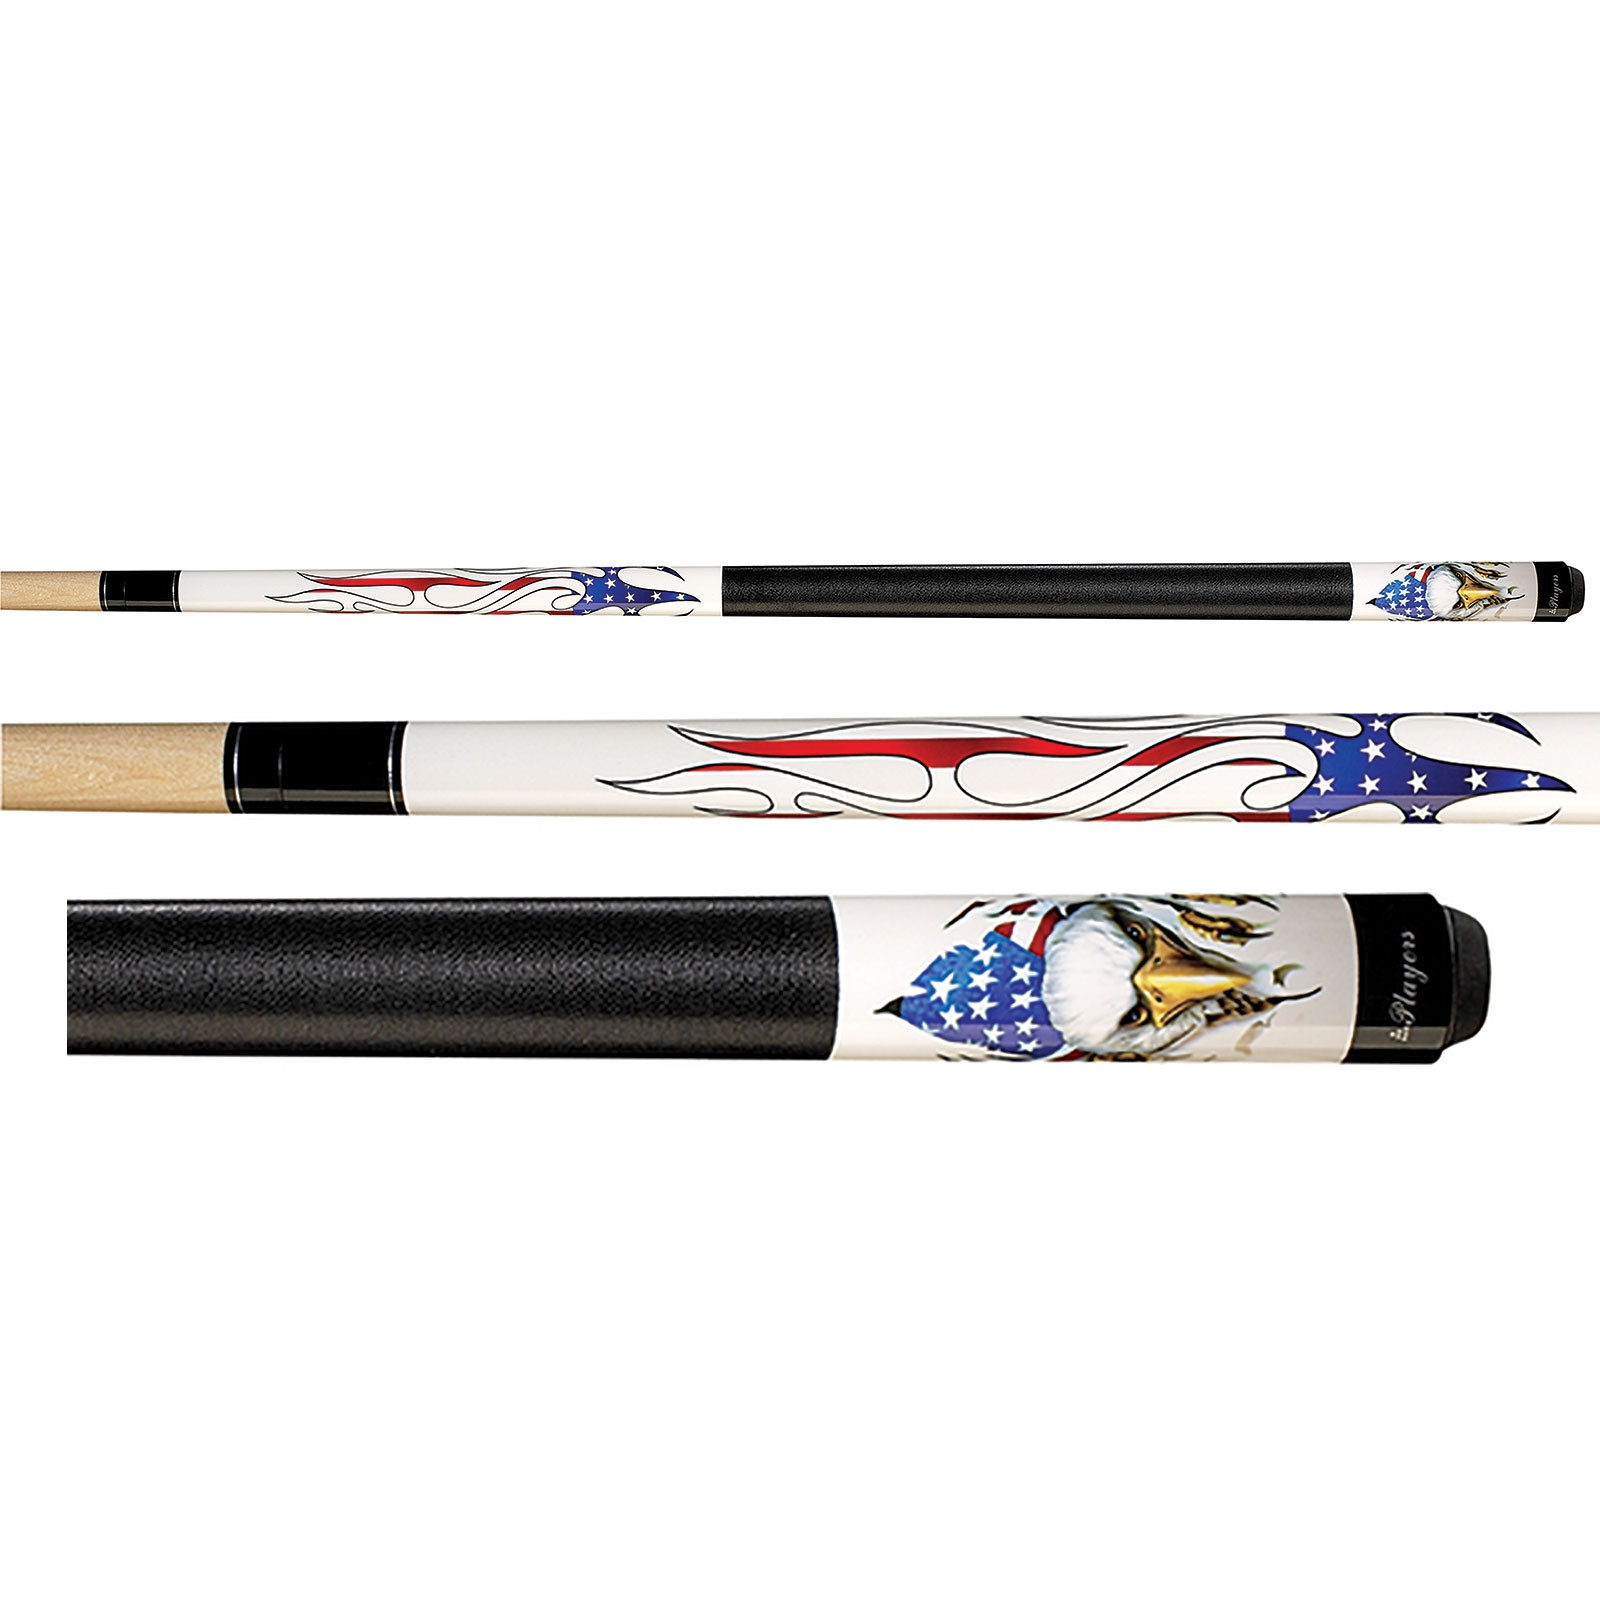 Players D-PEG Screaming Eagle Graphic White Pool Cue Stick